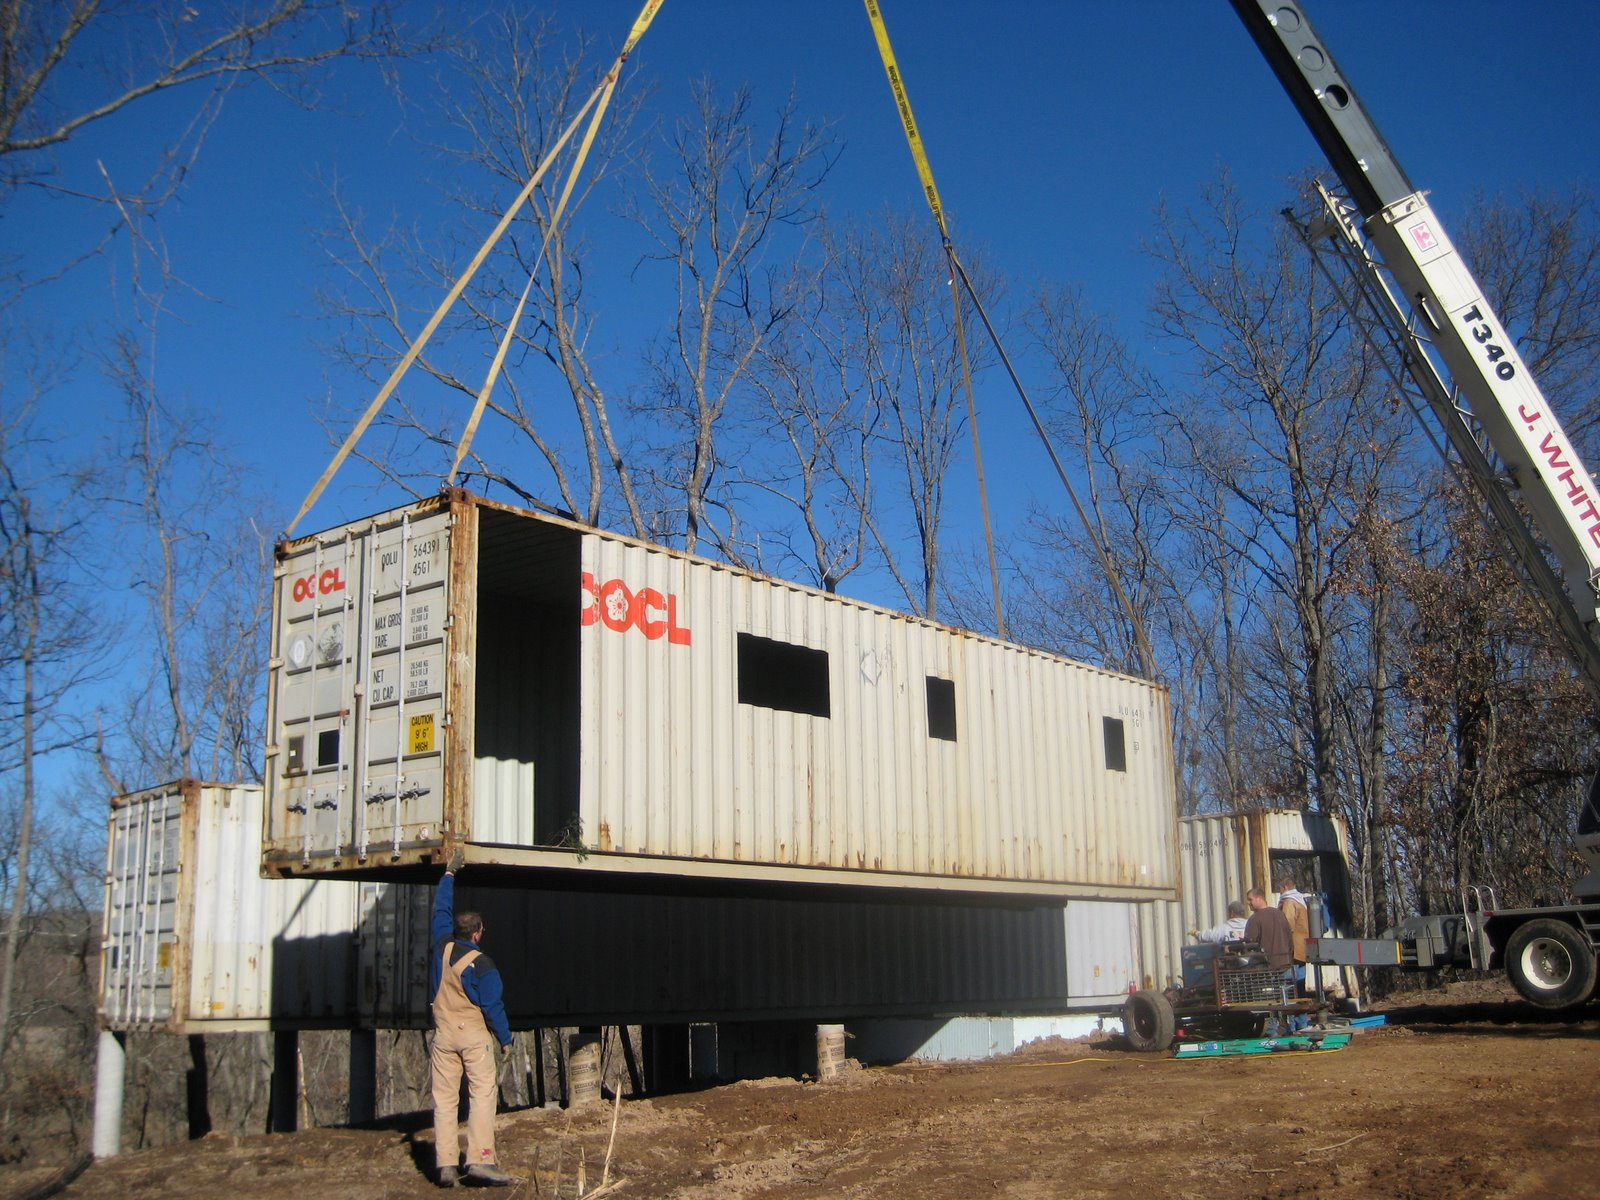 Shipping container homes may 2011 - How to make a home from shipping containers in new ...